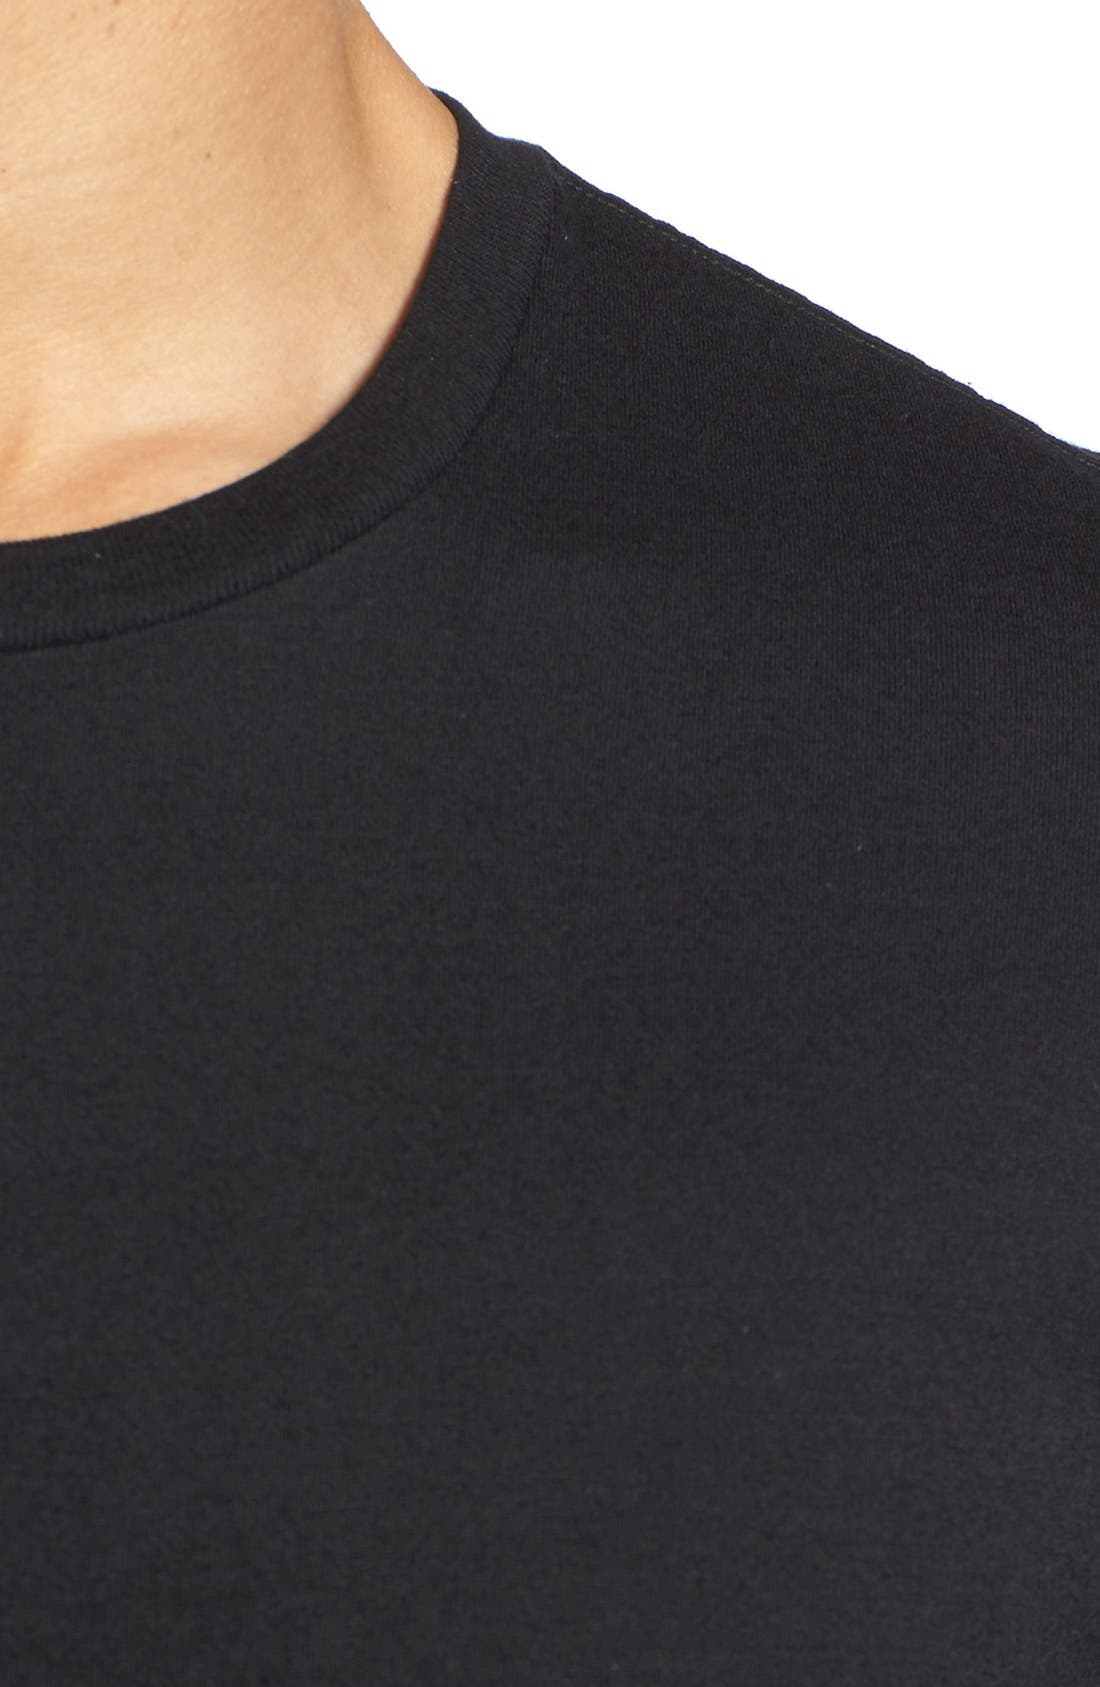 Crewneck T-Shirt,                             Alternate thumbnail 2, color,                             BLACK